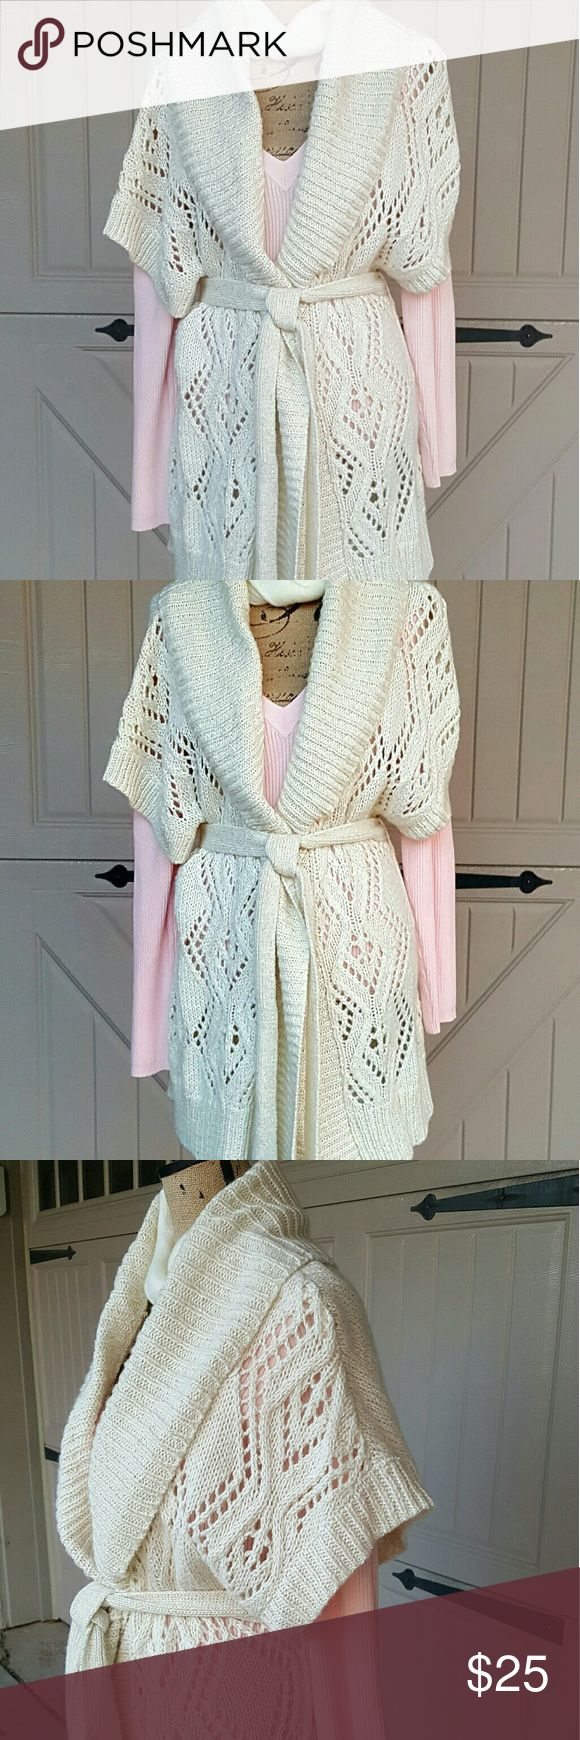 """Old Navy Cardigan Sweater  winte white shimmer  L NWT shimmer winter  white Cardigan Sweater wear with slacks or skirt for office or with a dress for evening size Large 35"""" in length bust 20 """" Old Navy Sweaters Cardigans"""